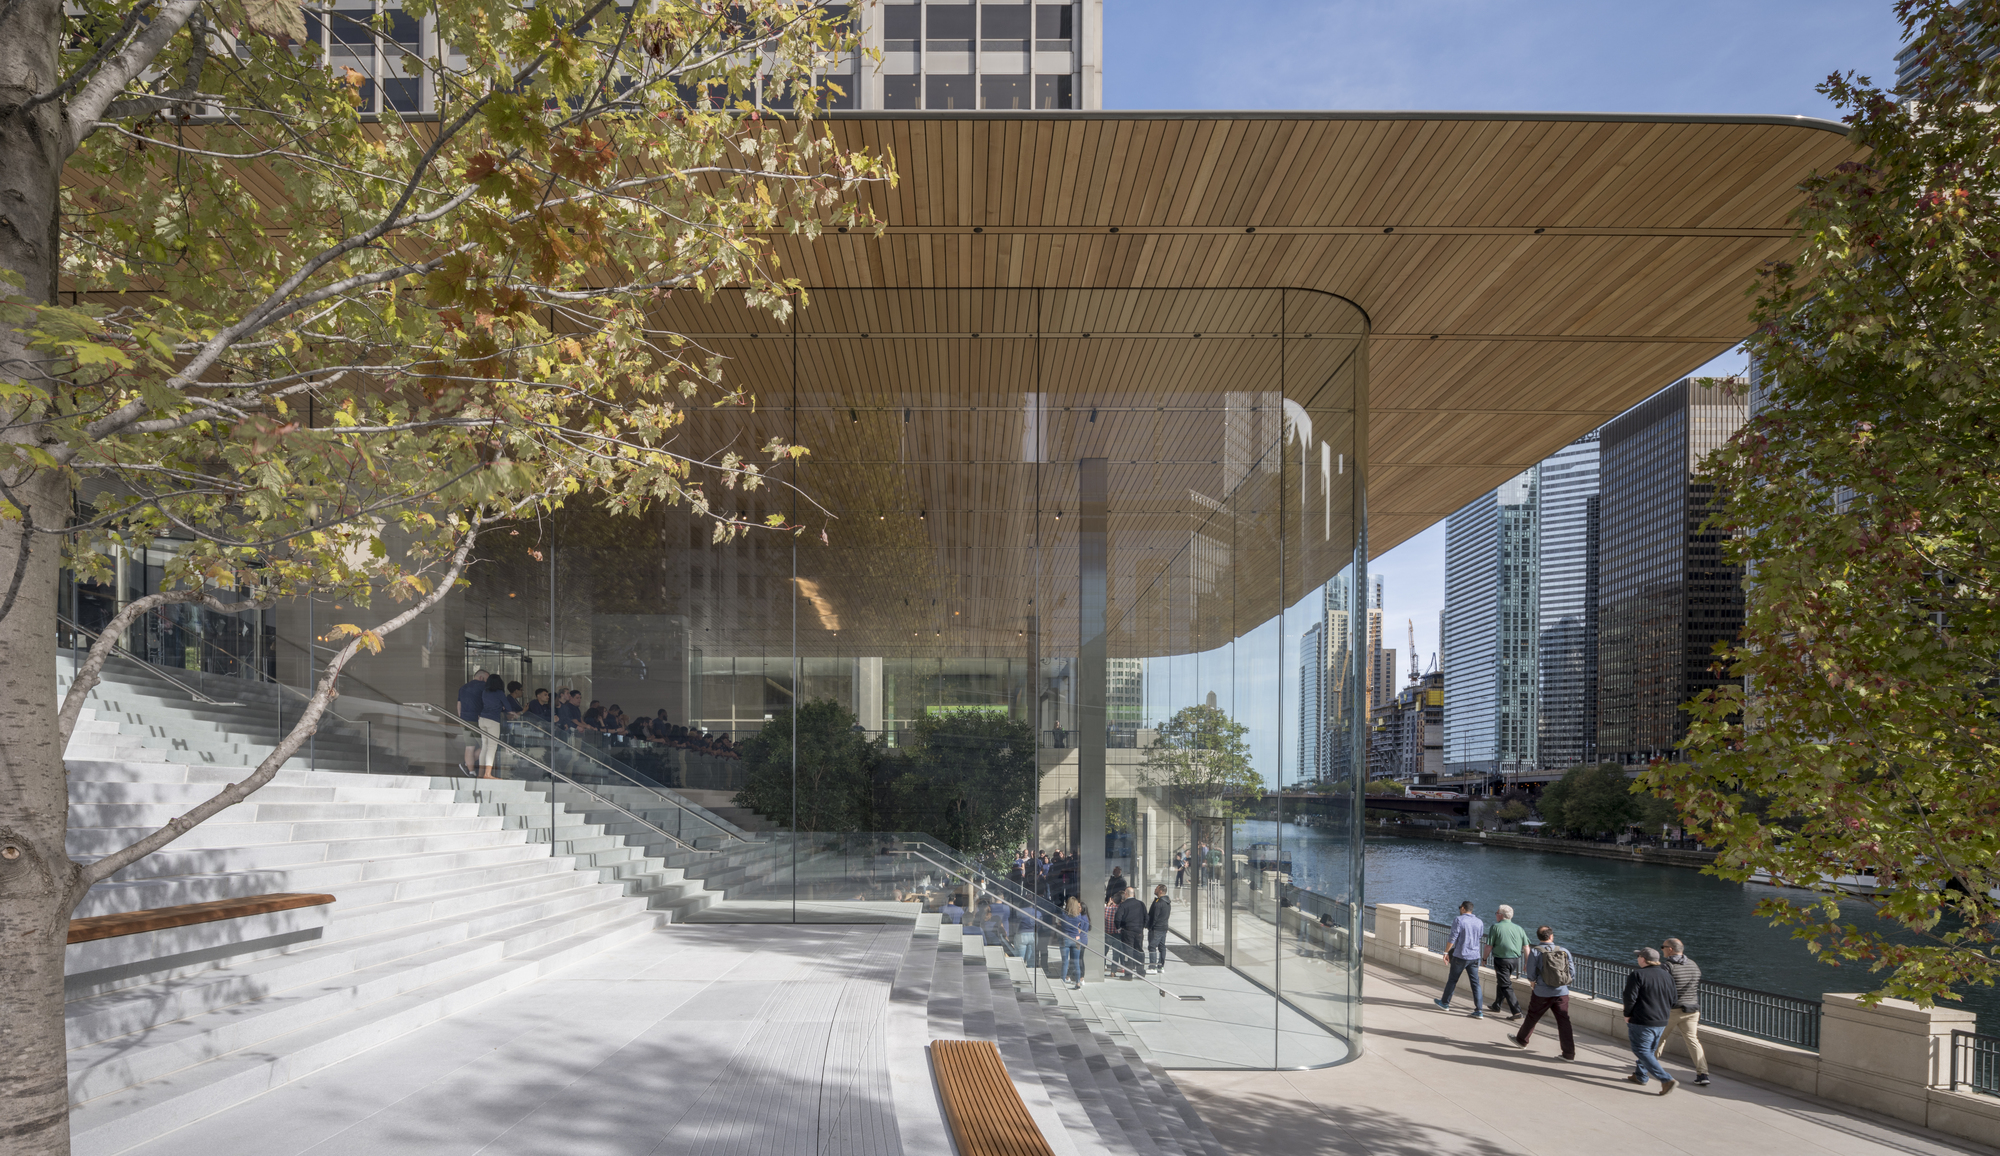 Apple Store Michigan Avenue, Chicago / Foster + Partners, © Nigel Young